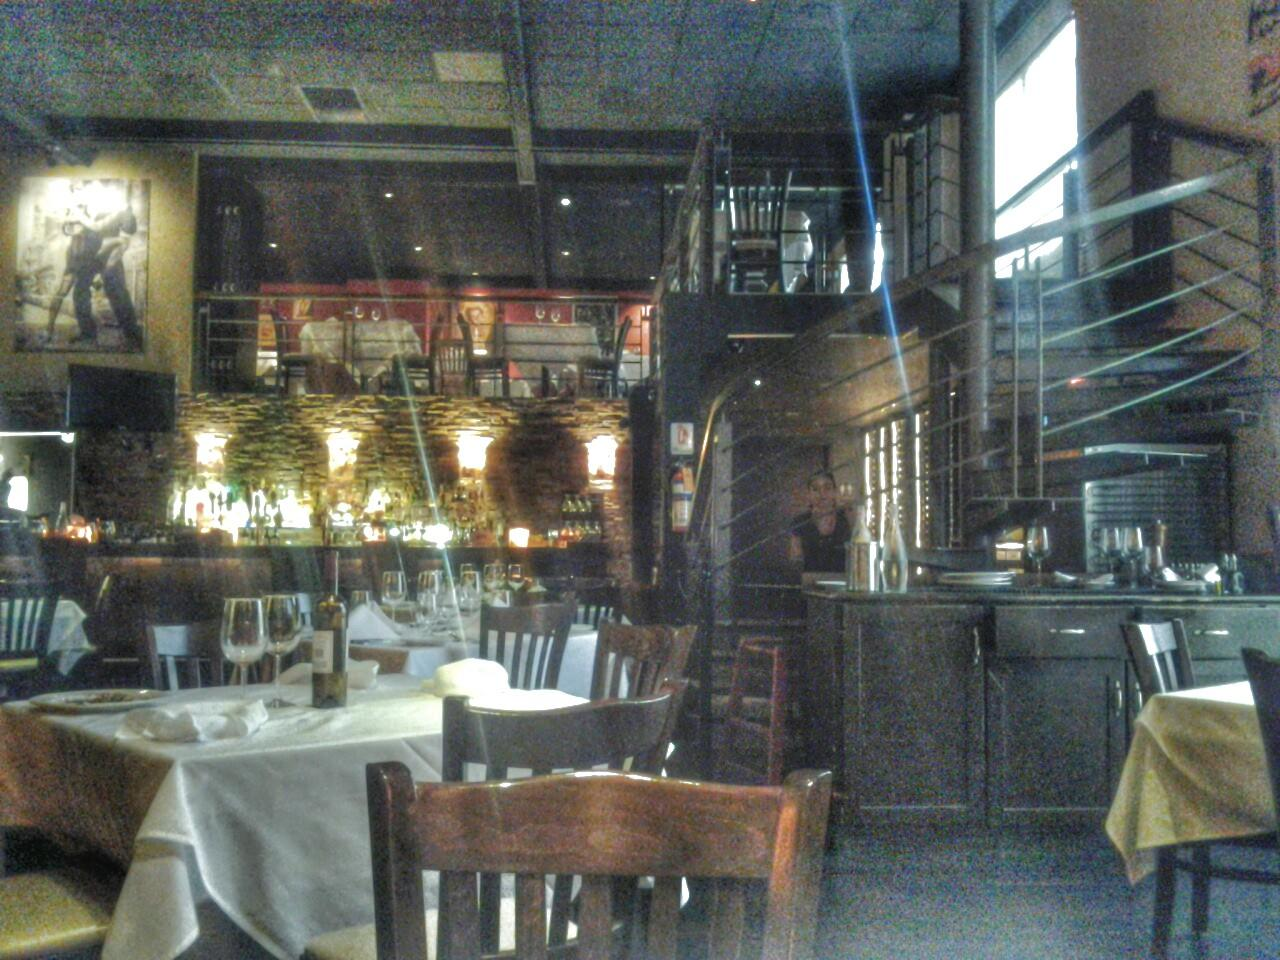 Garufas Argentine restaurant. Nice interior with paintings and sculptures. Reasonable menu